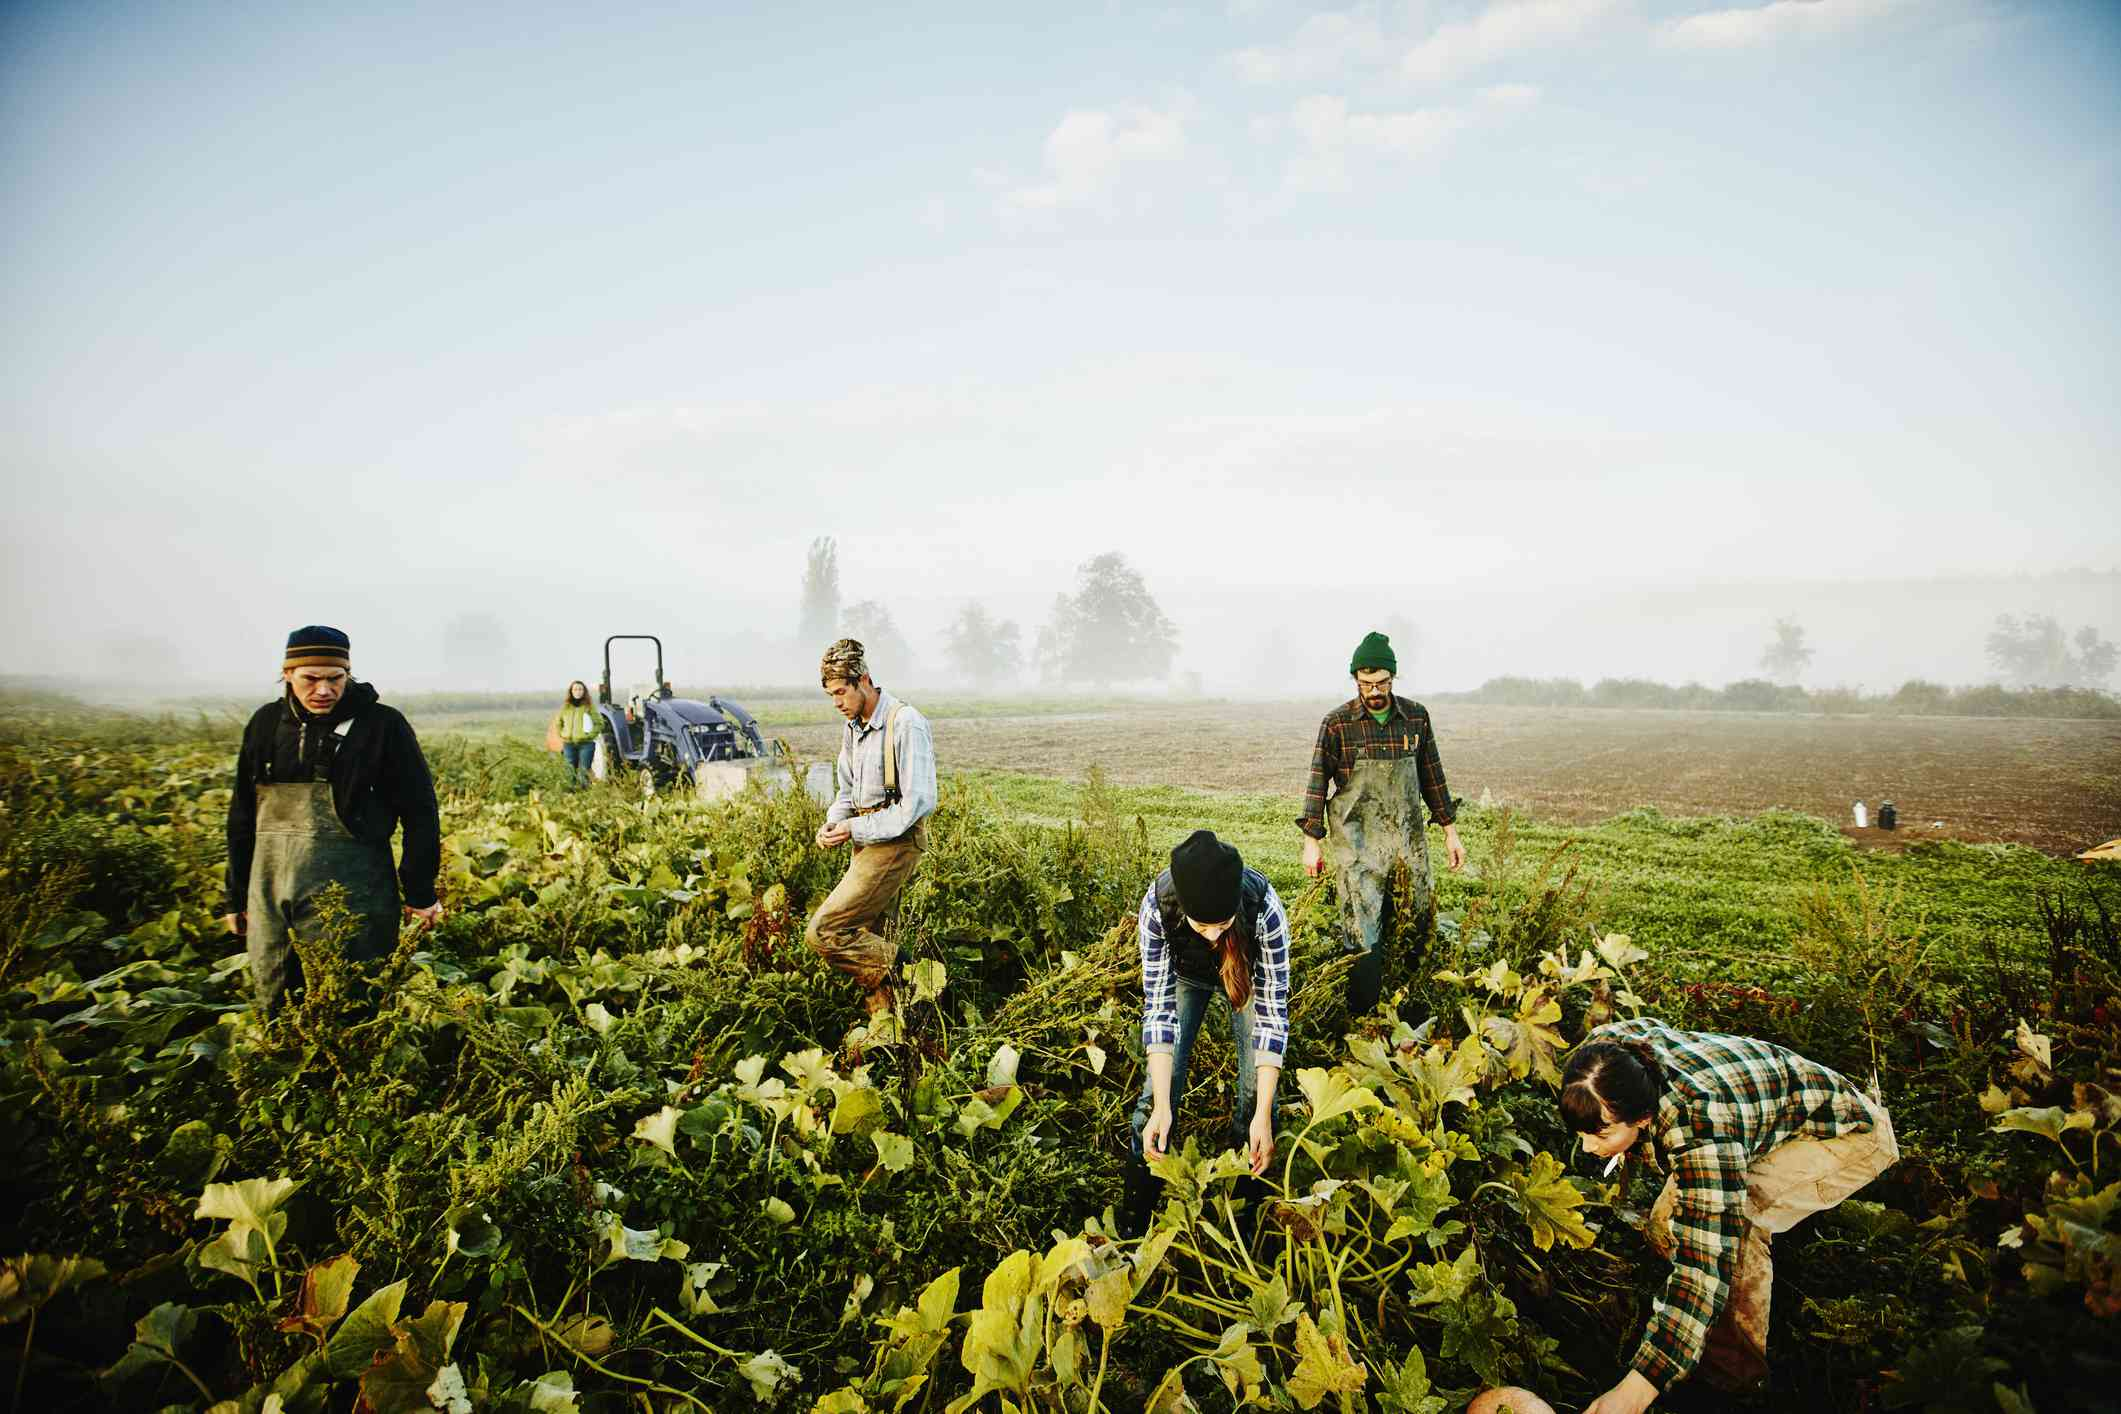 Young farmers working in a misty field together picking vegetables.